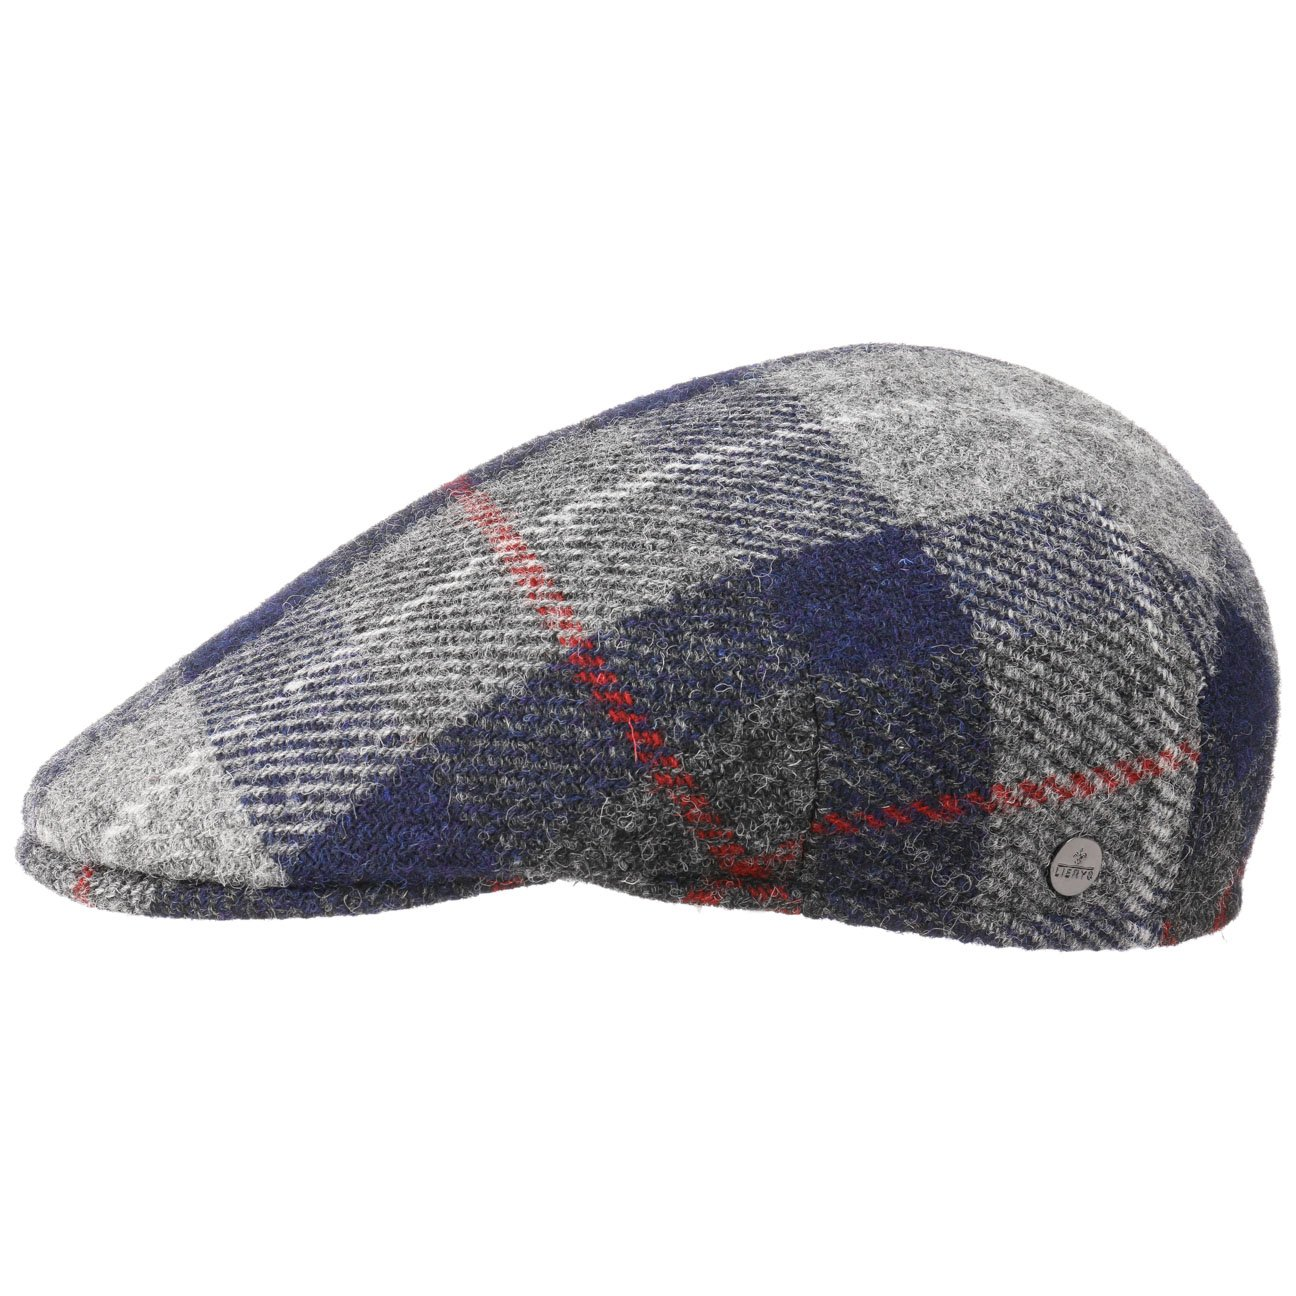 Lierys Coppola Tirreno Harris Tweed Berretto Piatto Cappello Invernale Cappellino in Lana